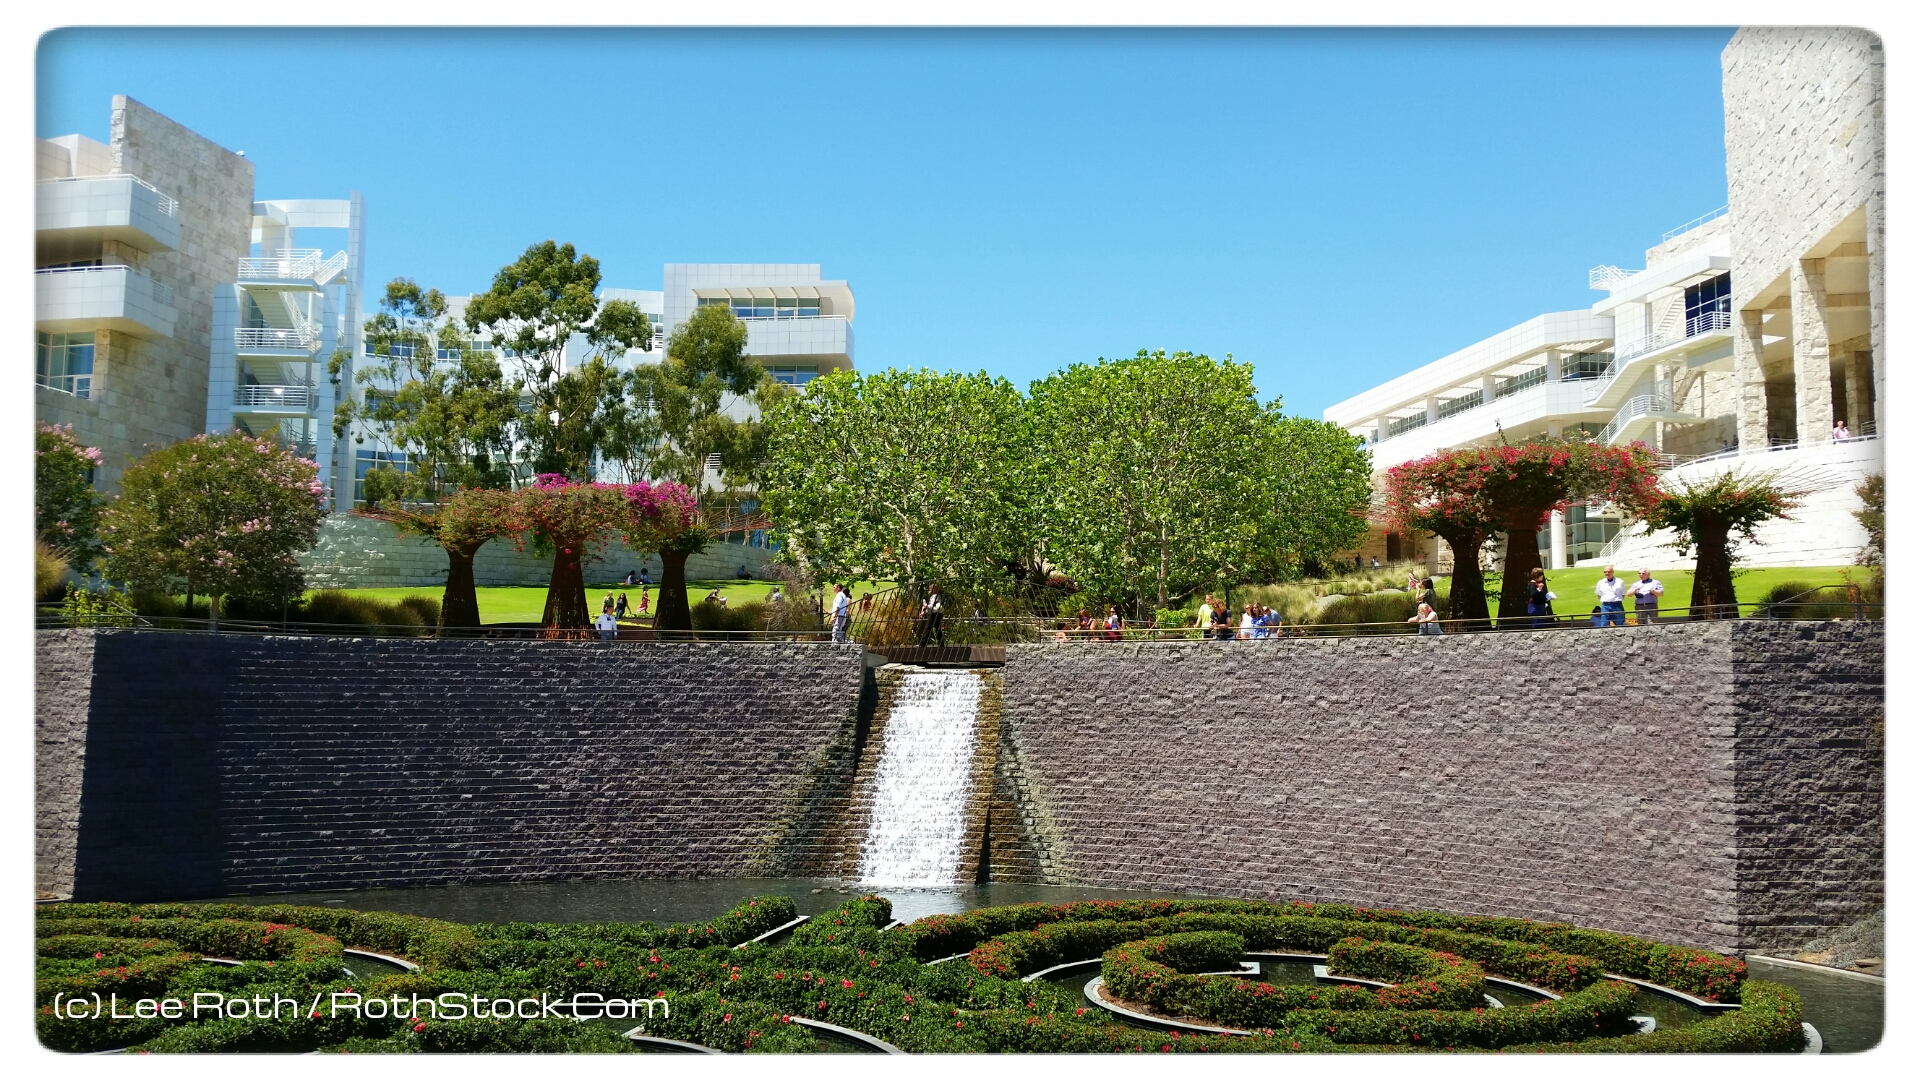 The J. Paul Getty Museum